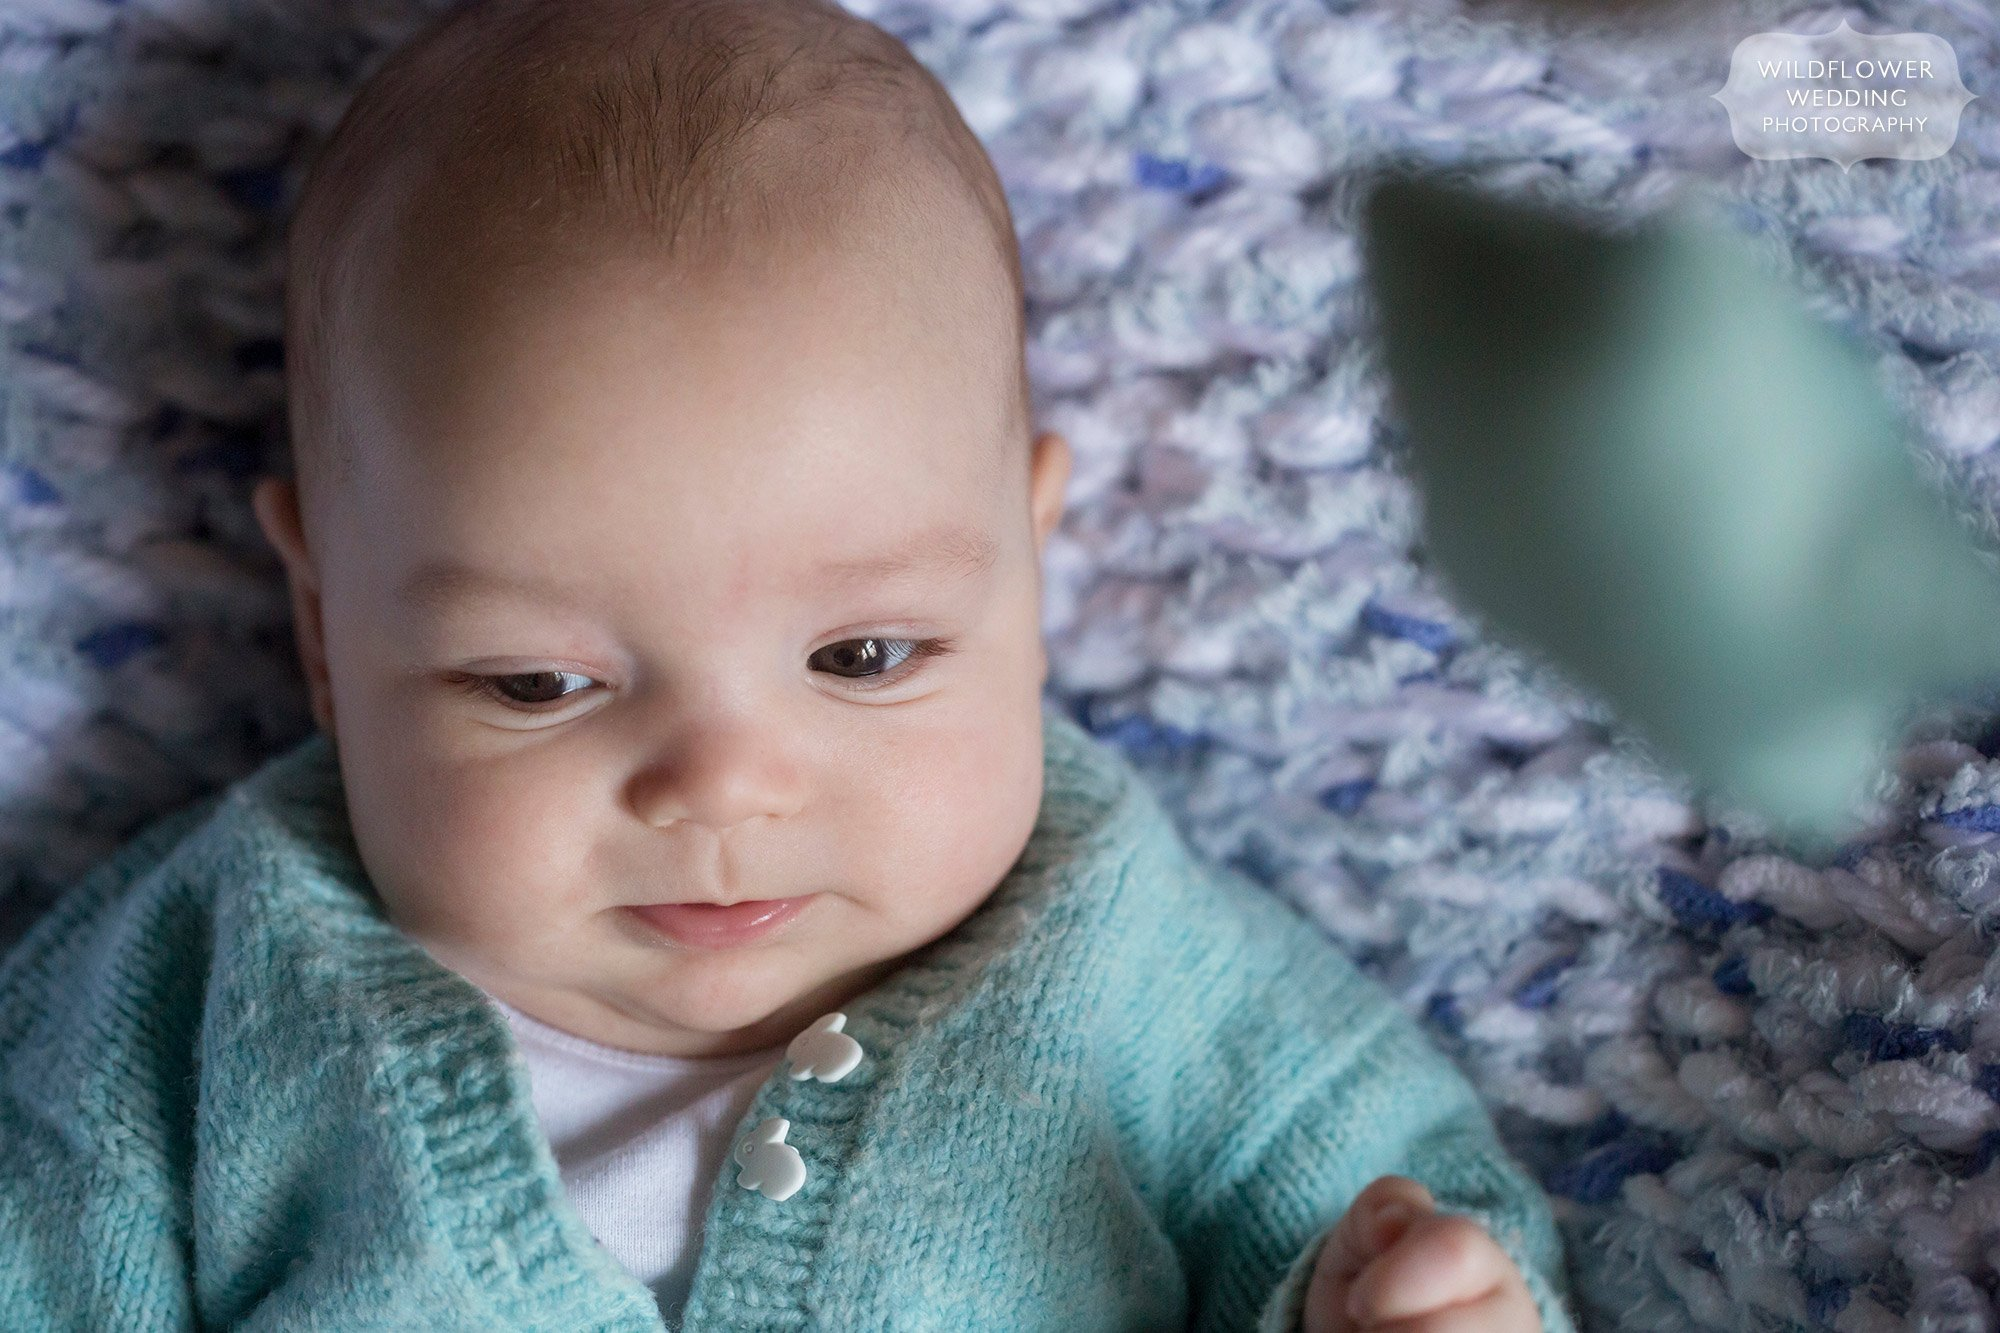 Cute baby photography with handknit mint sweater.